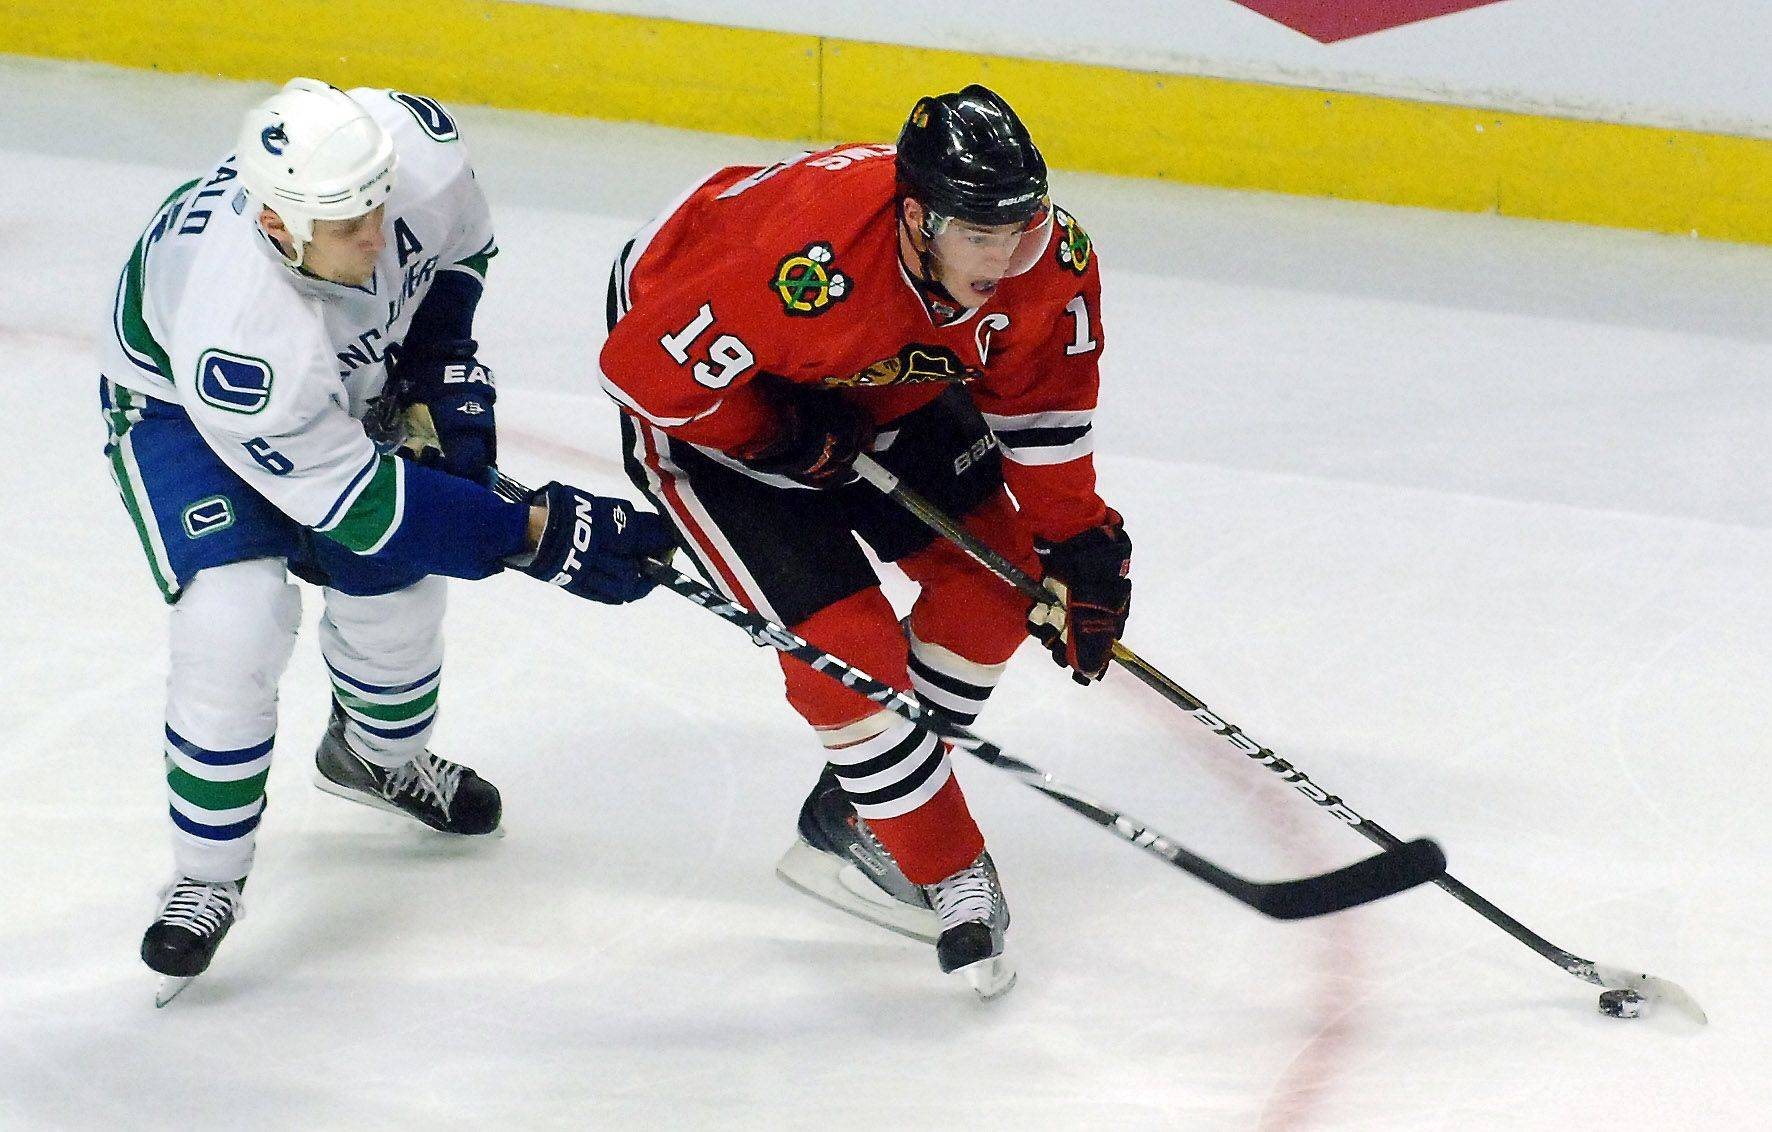 Chicago Blackhawks center Jonathan Toews (19) tries to find some room to skate past Vancouver Canucks defenseman Sami Salo (6) in the third period during Game Three of the NHL Western Conference Quarterfinals Sunday at the United Center in Chicago.